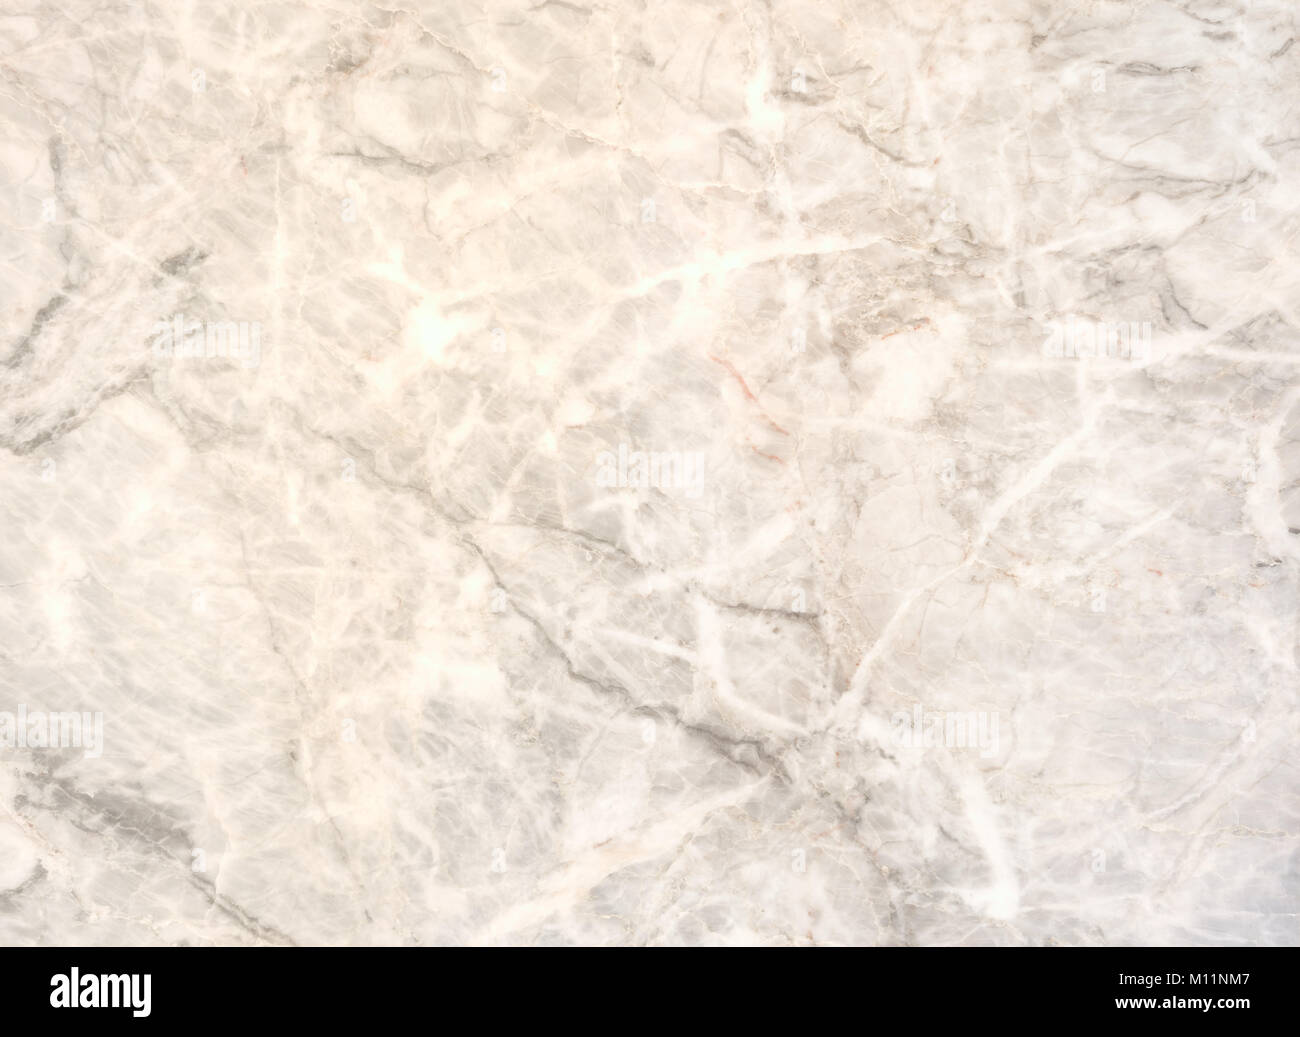 Beige Marble Stone Natural Light For Bathroom Or Kitchen White Stock Photo Alamy